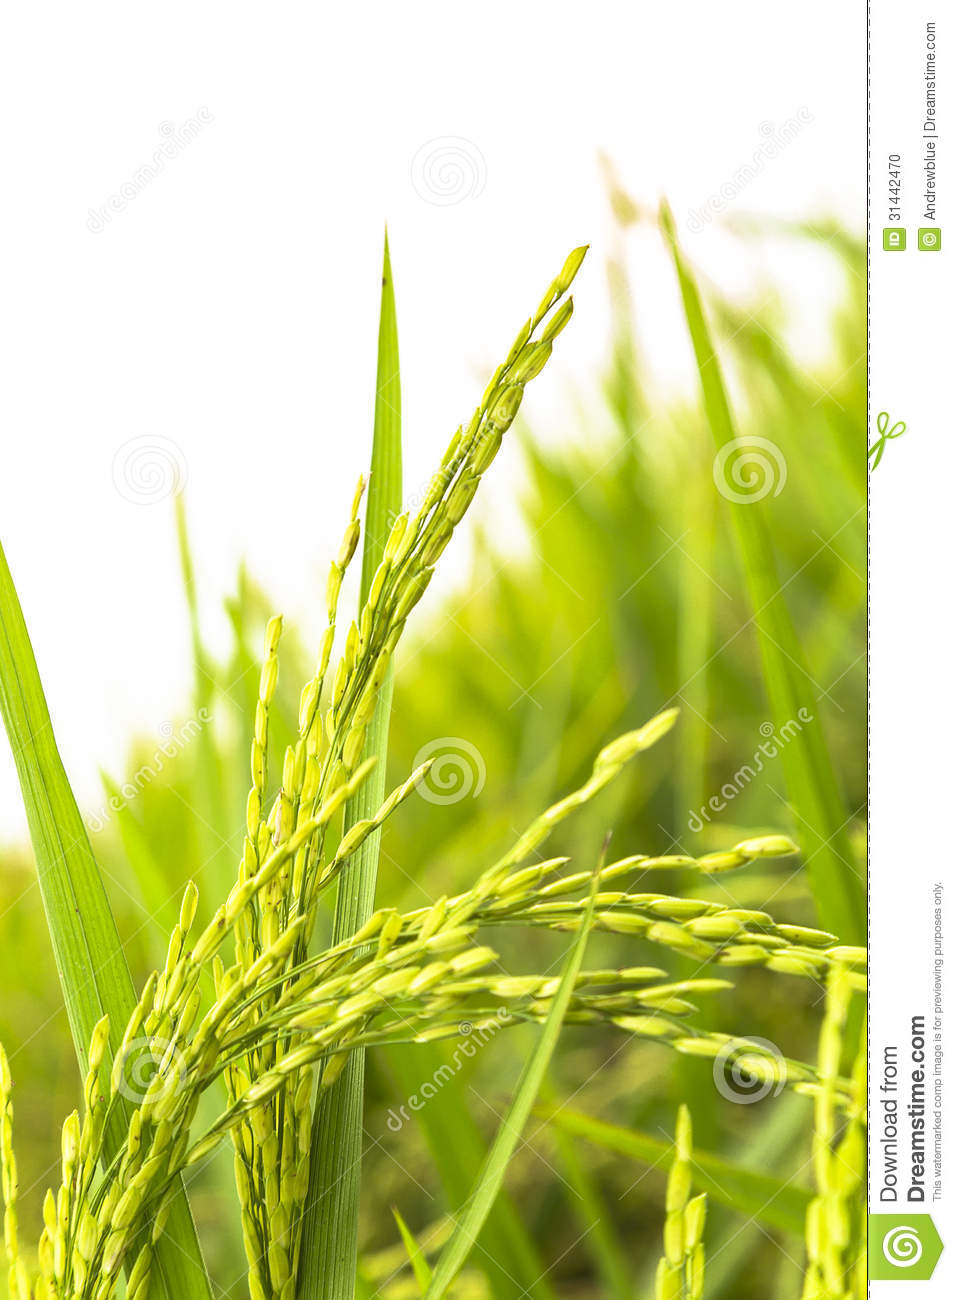 Golden Paddy Rice Stalk On White Background